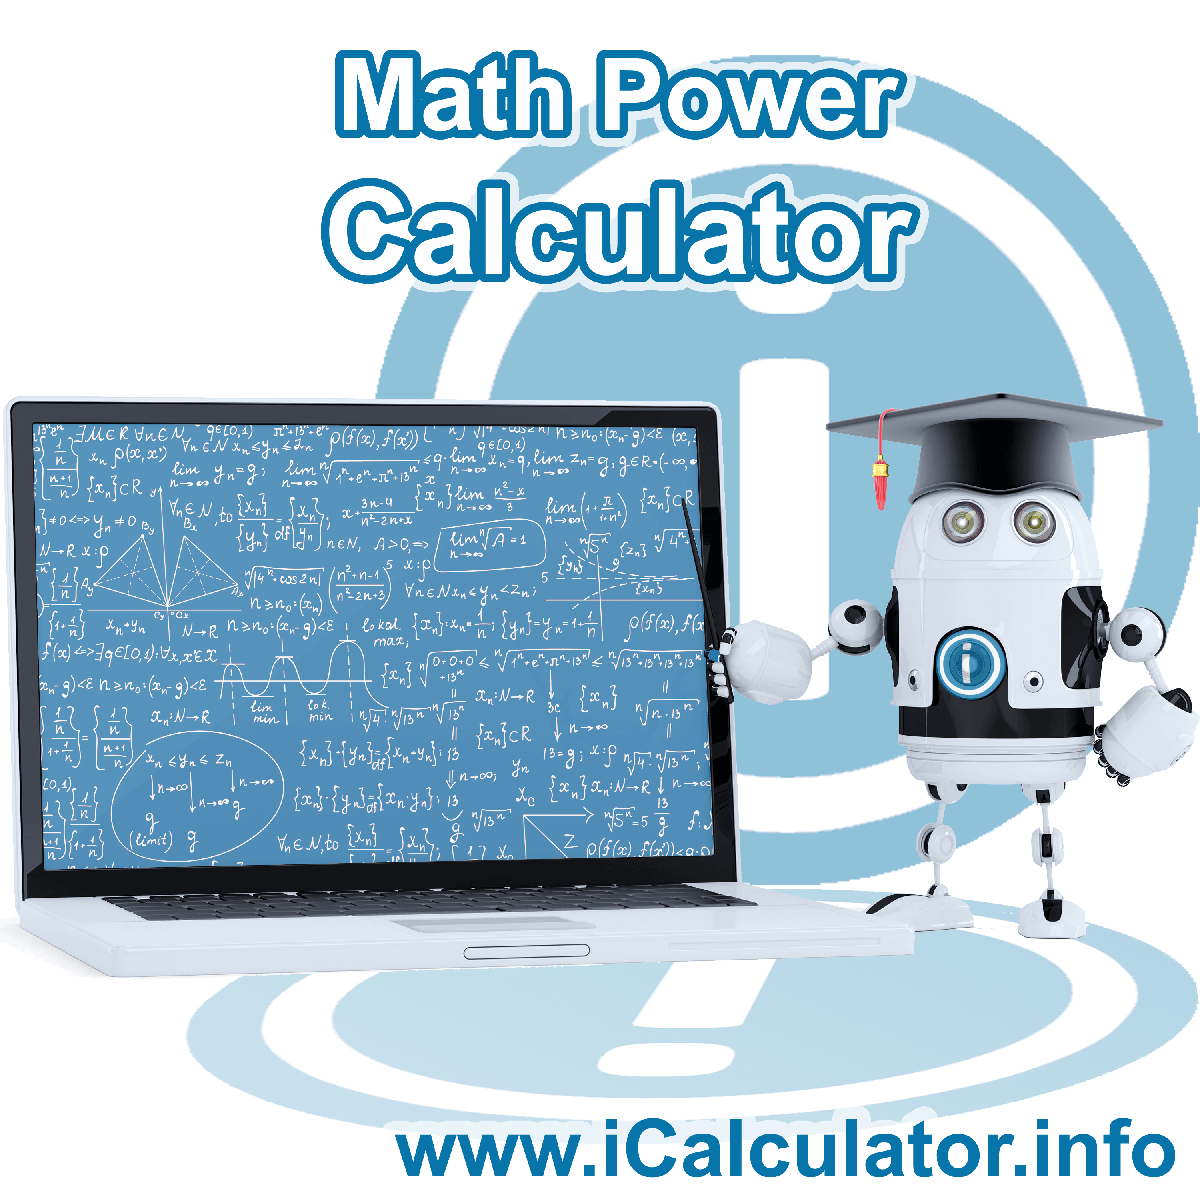 Mathematics Power Calculator. This image shows Math Power formula with associated calculations used by the Math Power Calculator